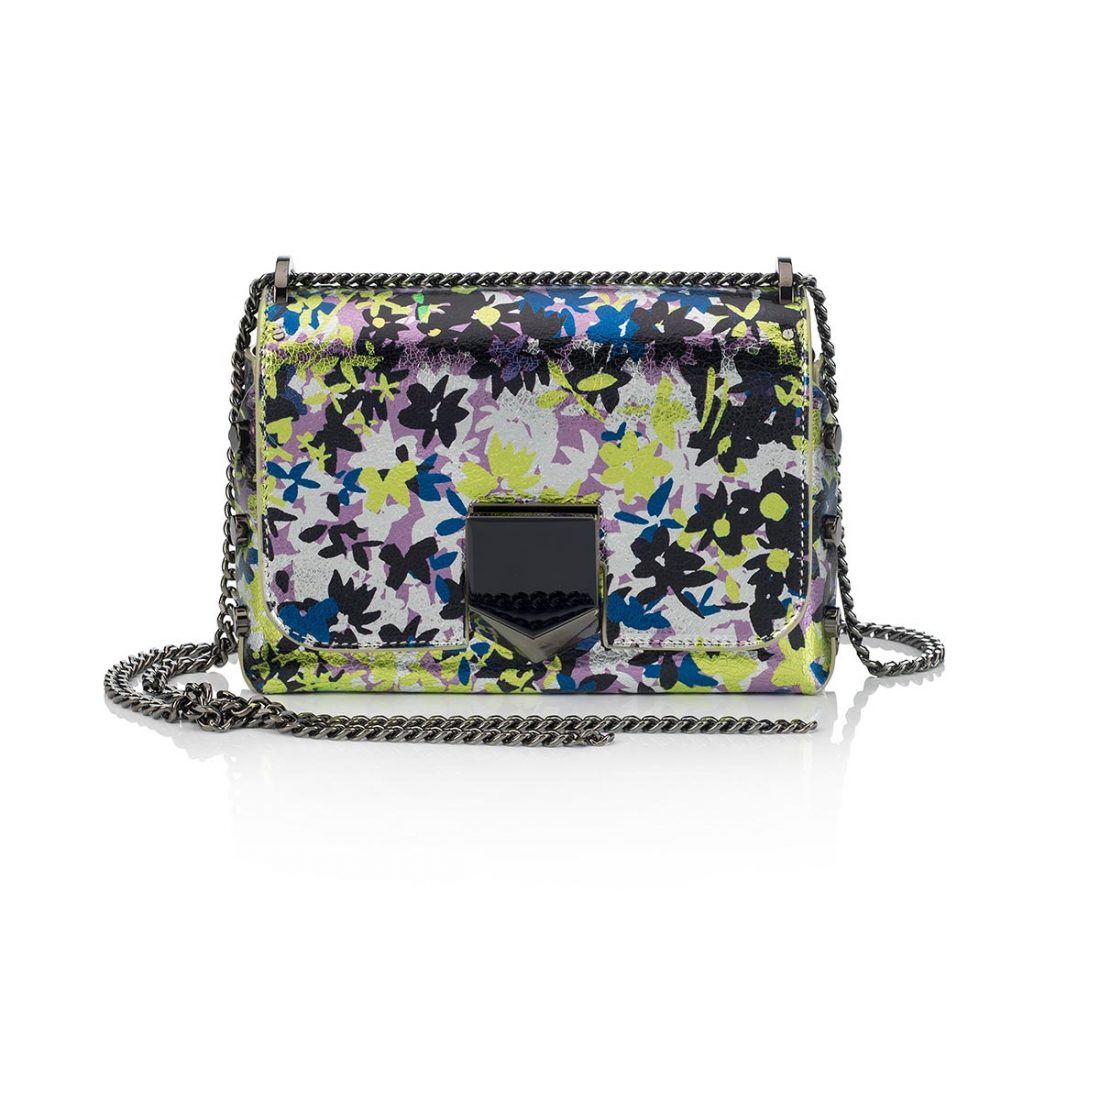 Lockett Petite Bag